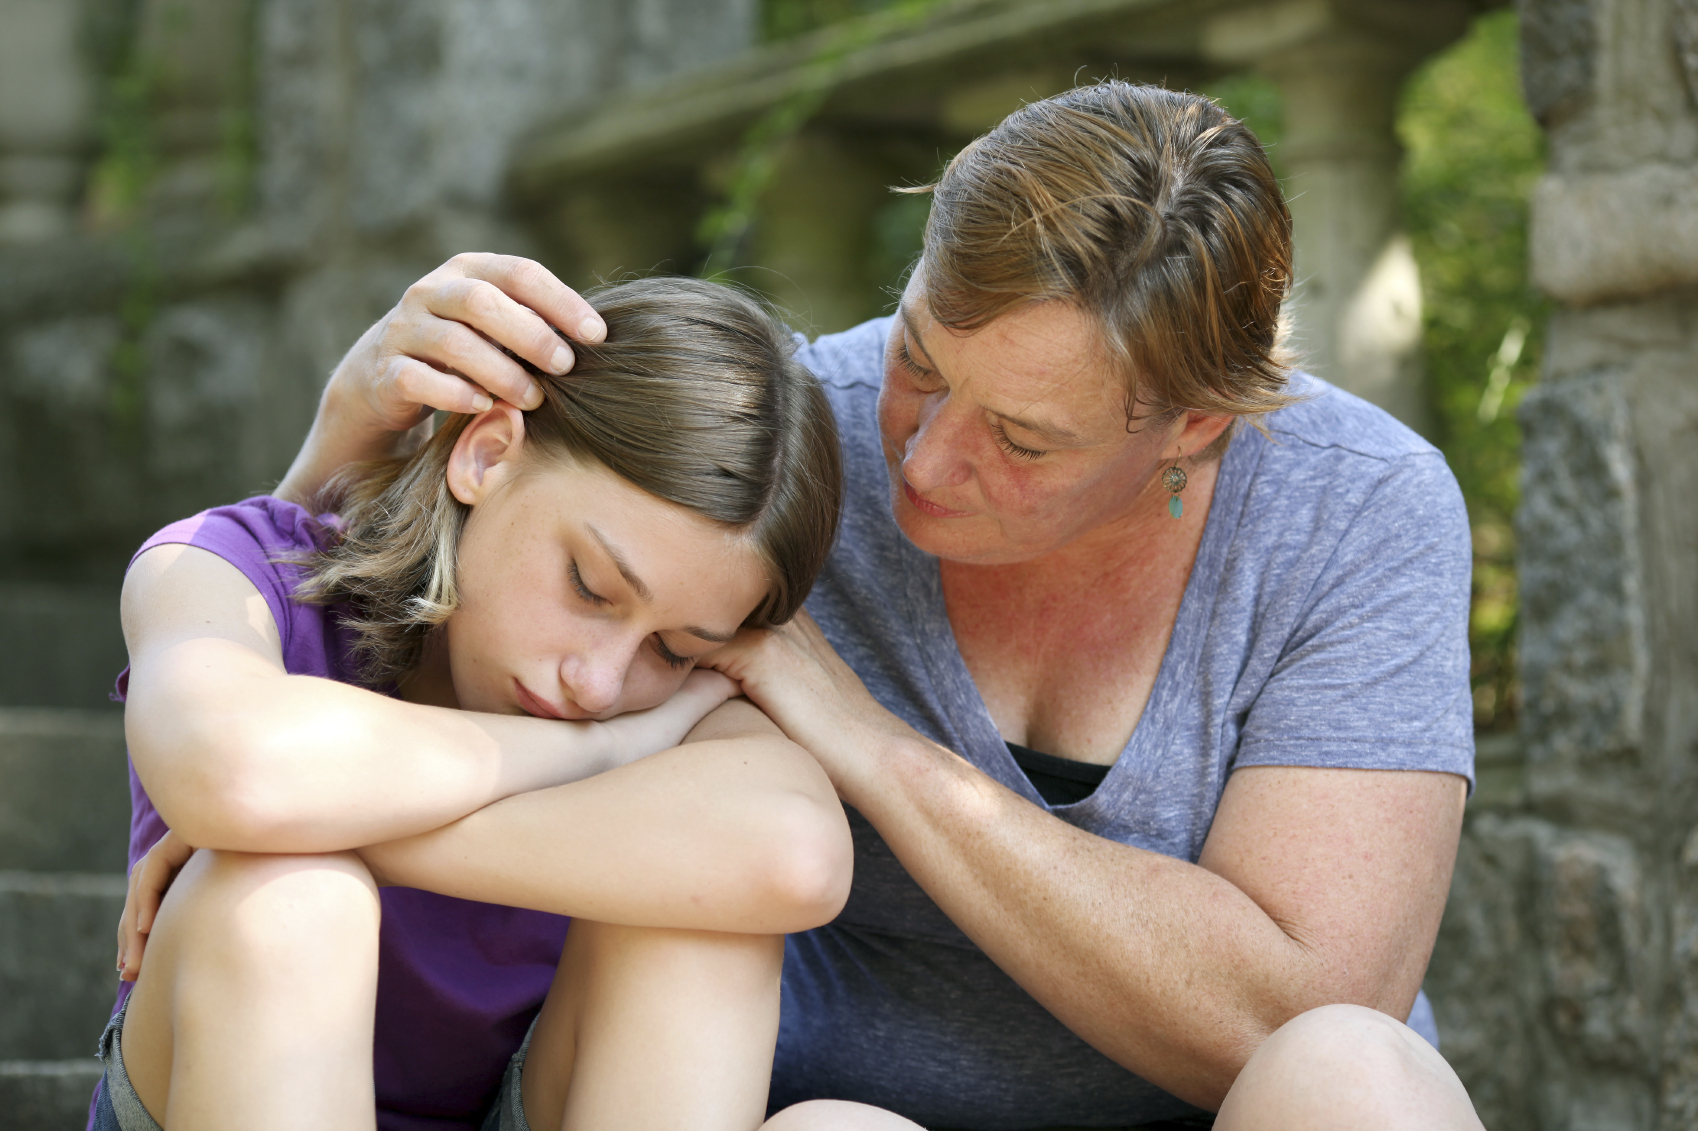 Sad child and mother embracing.